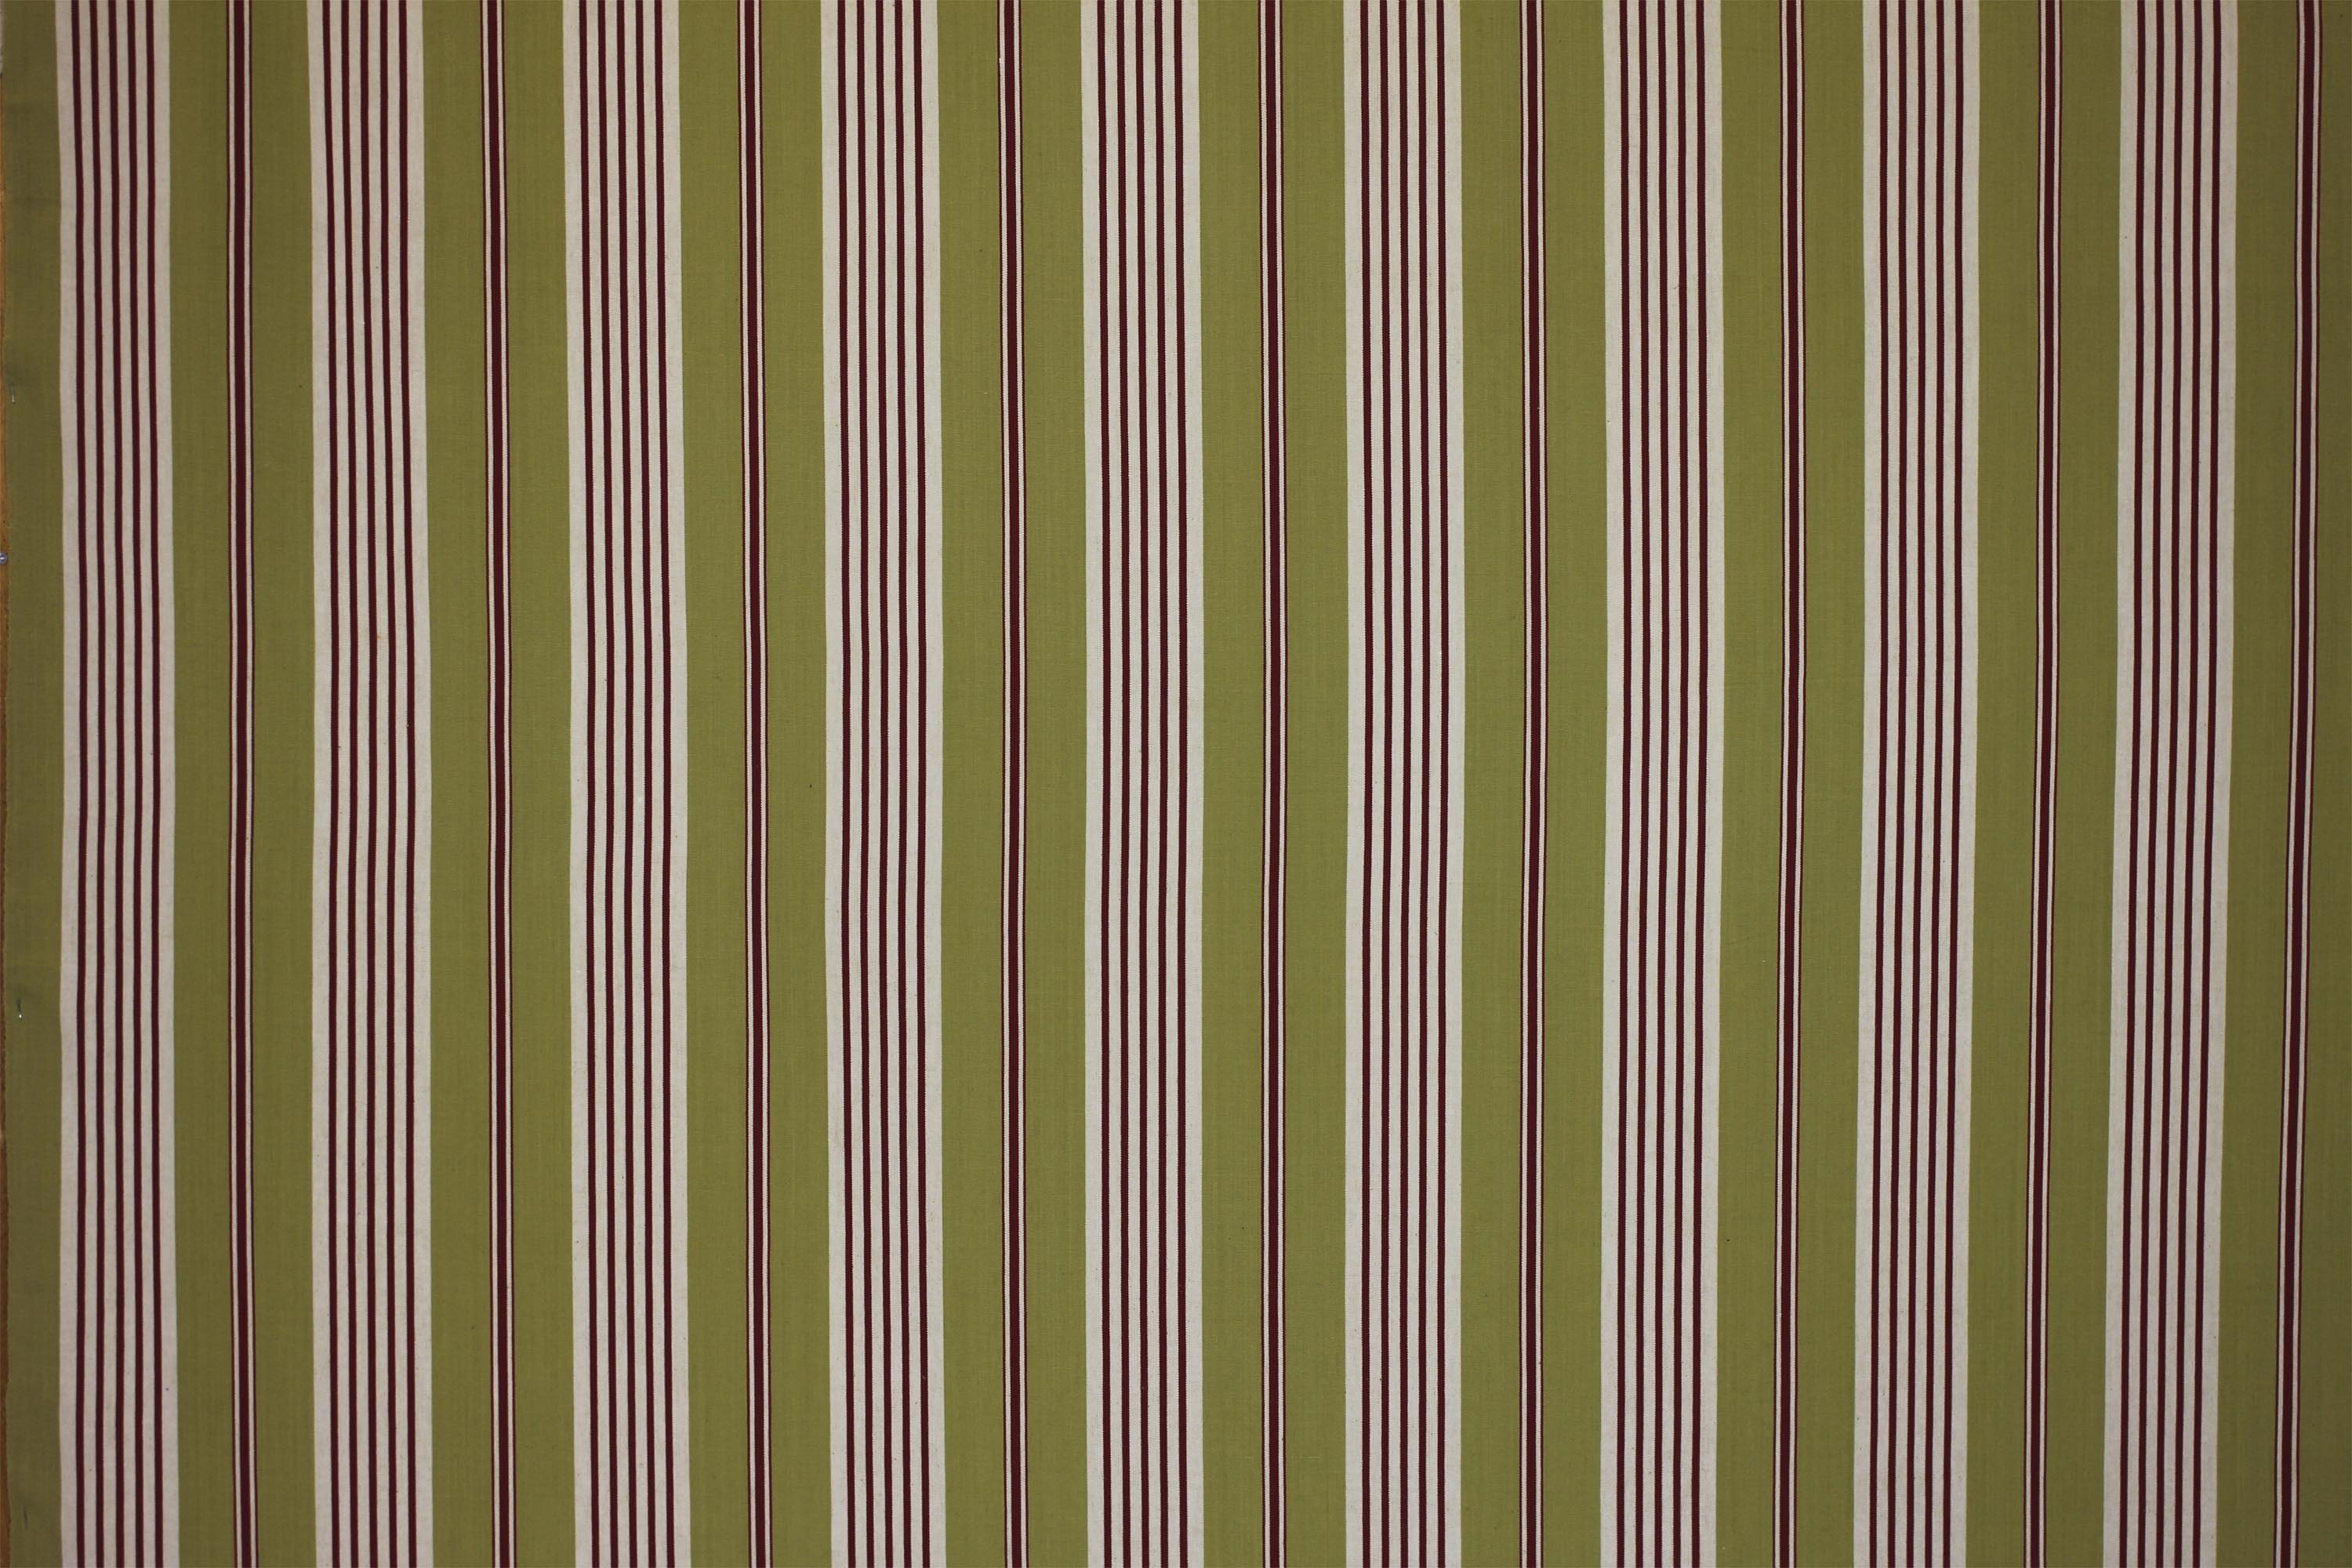 Olive Striped Oilcloth Fabrics | Wipeable Stripe Fabrics - Billiards Stripe